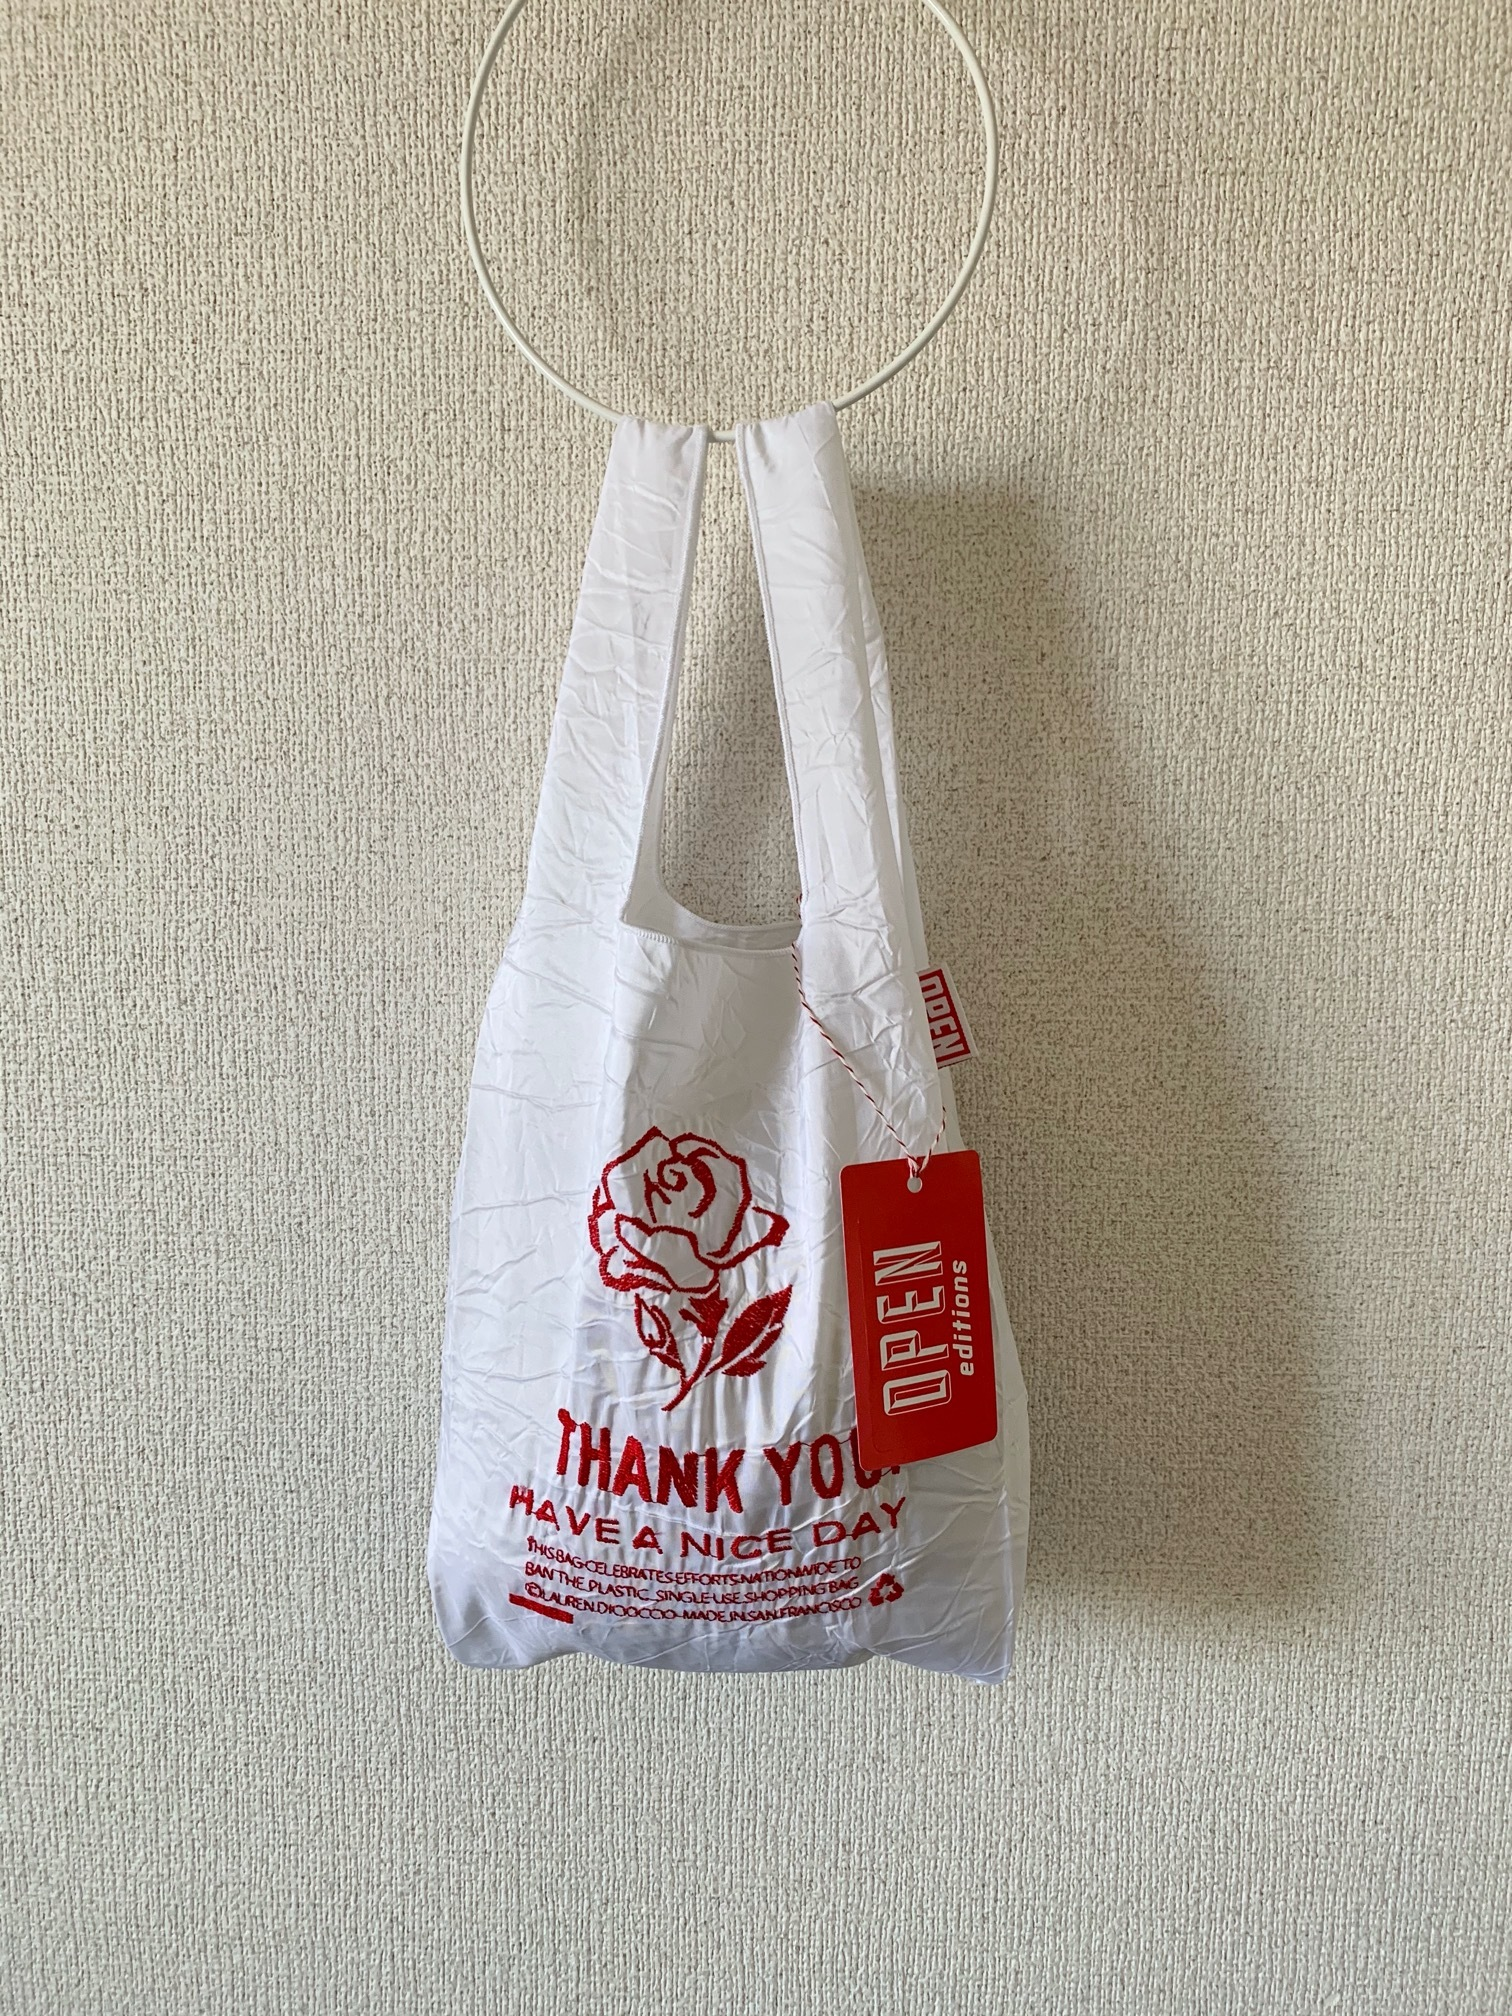 【OPEN EDITIONS/ 送料無料】THANK YOU MINI エコバッグ/ ROSE White